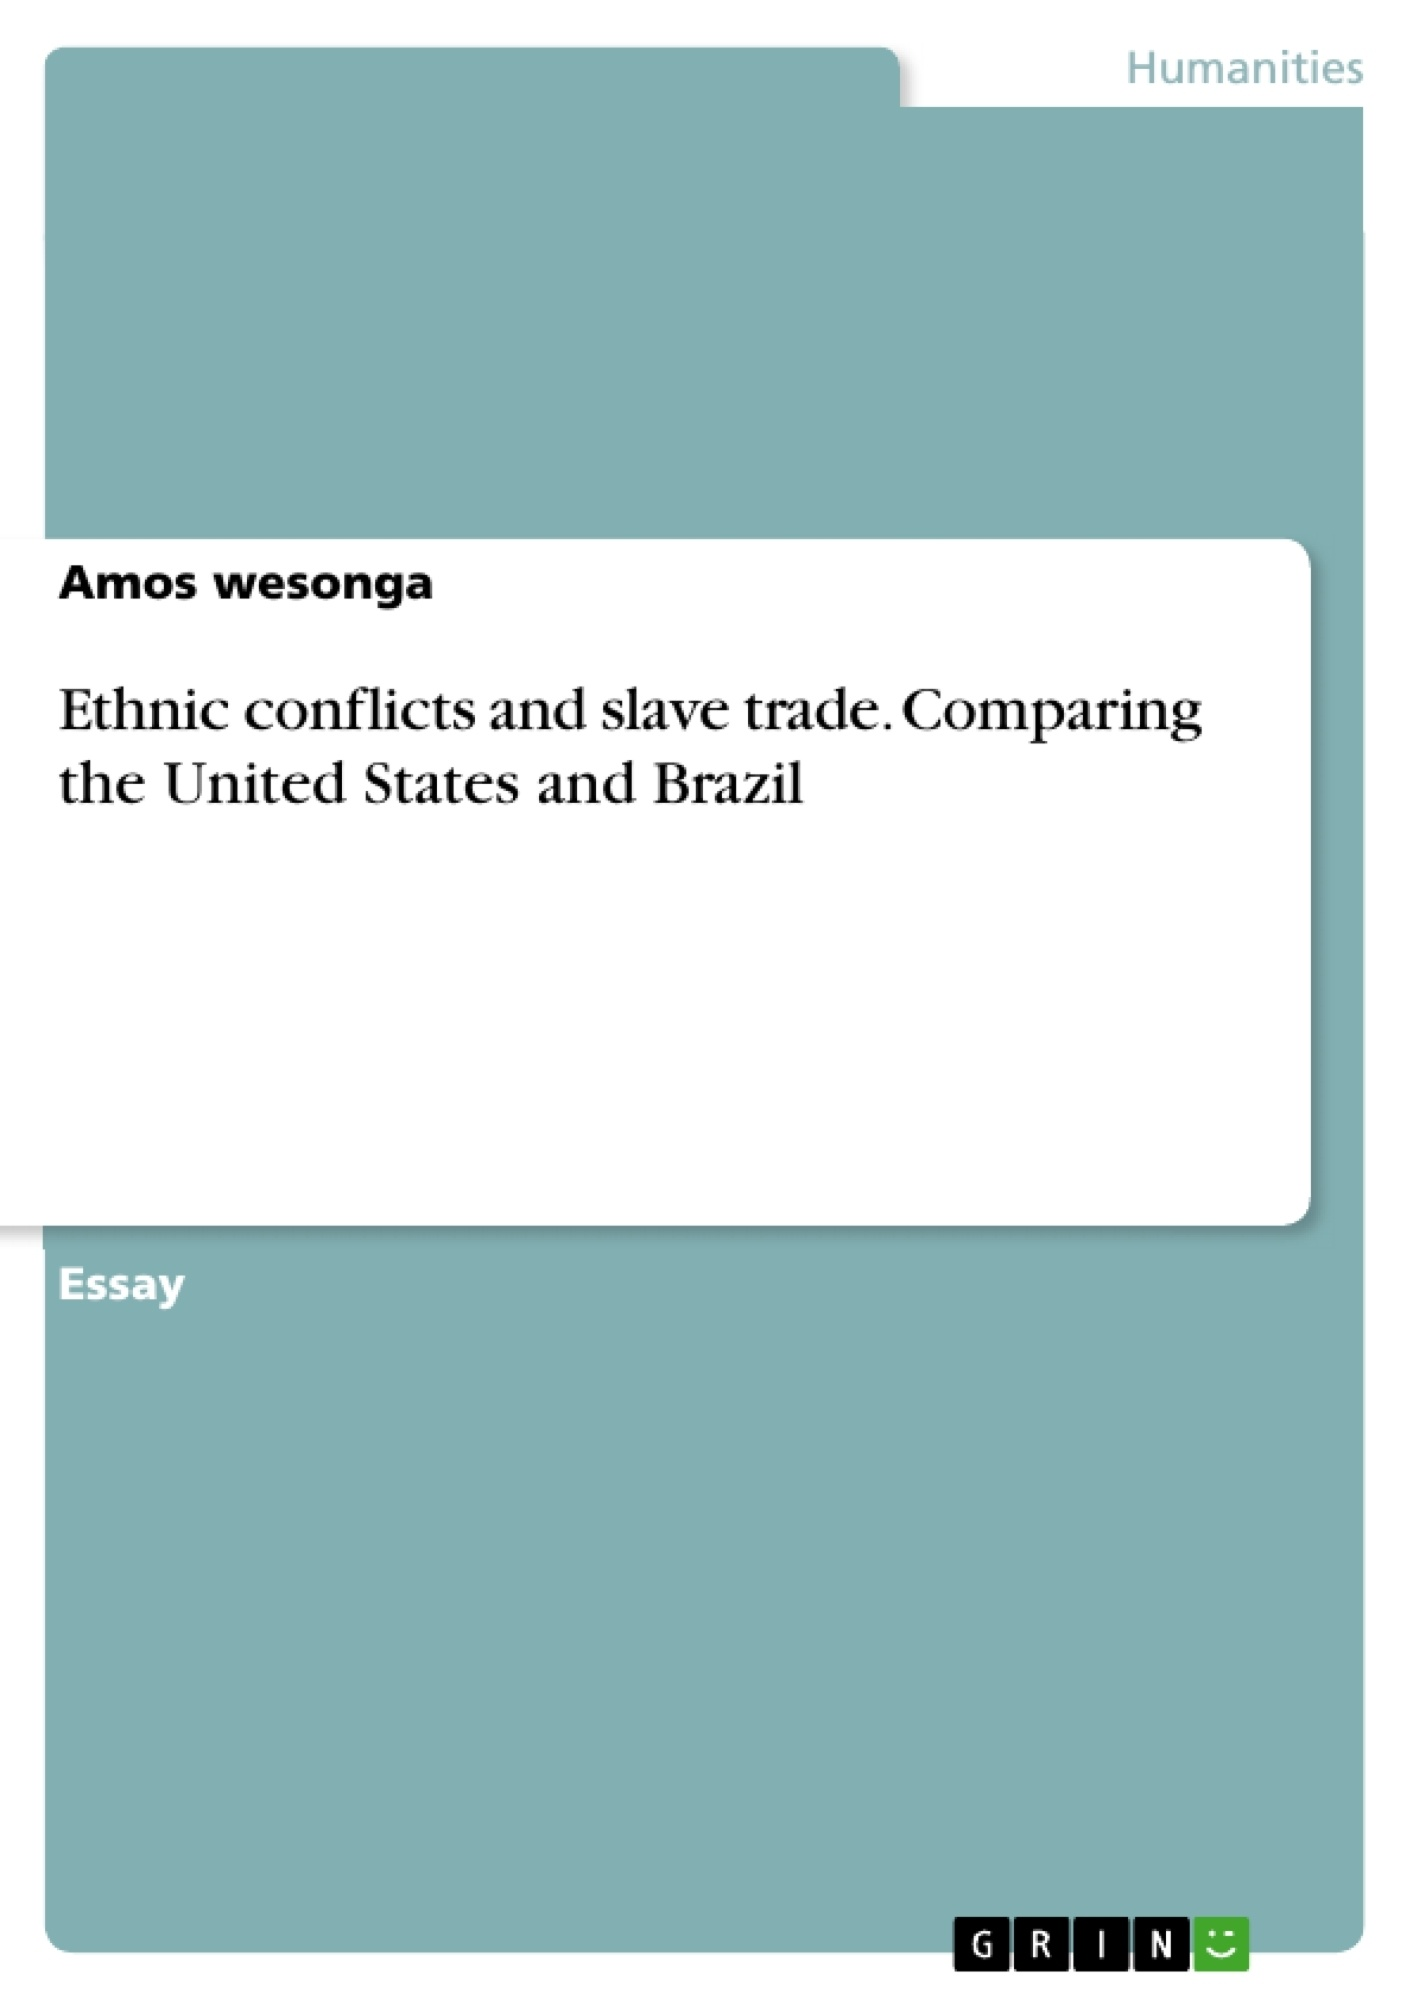 Title: Ethnic conflicts and slave trade. Comparing the United States and Brazil